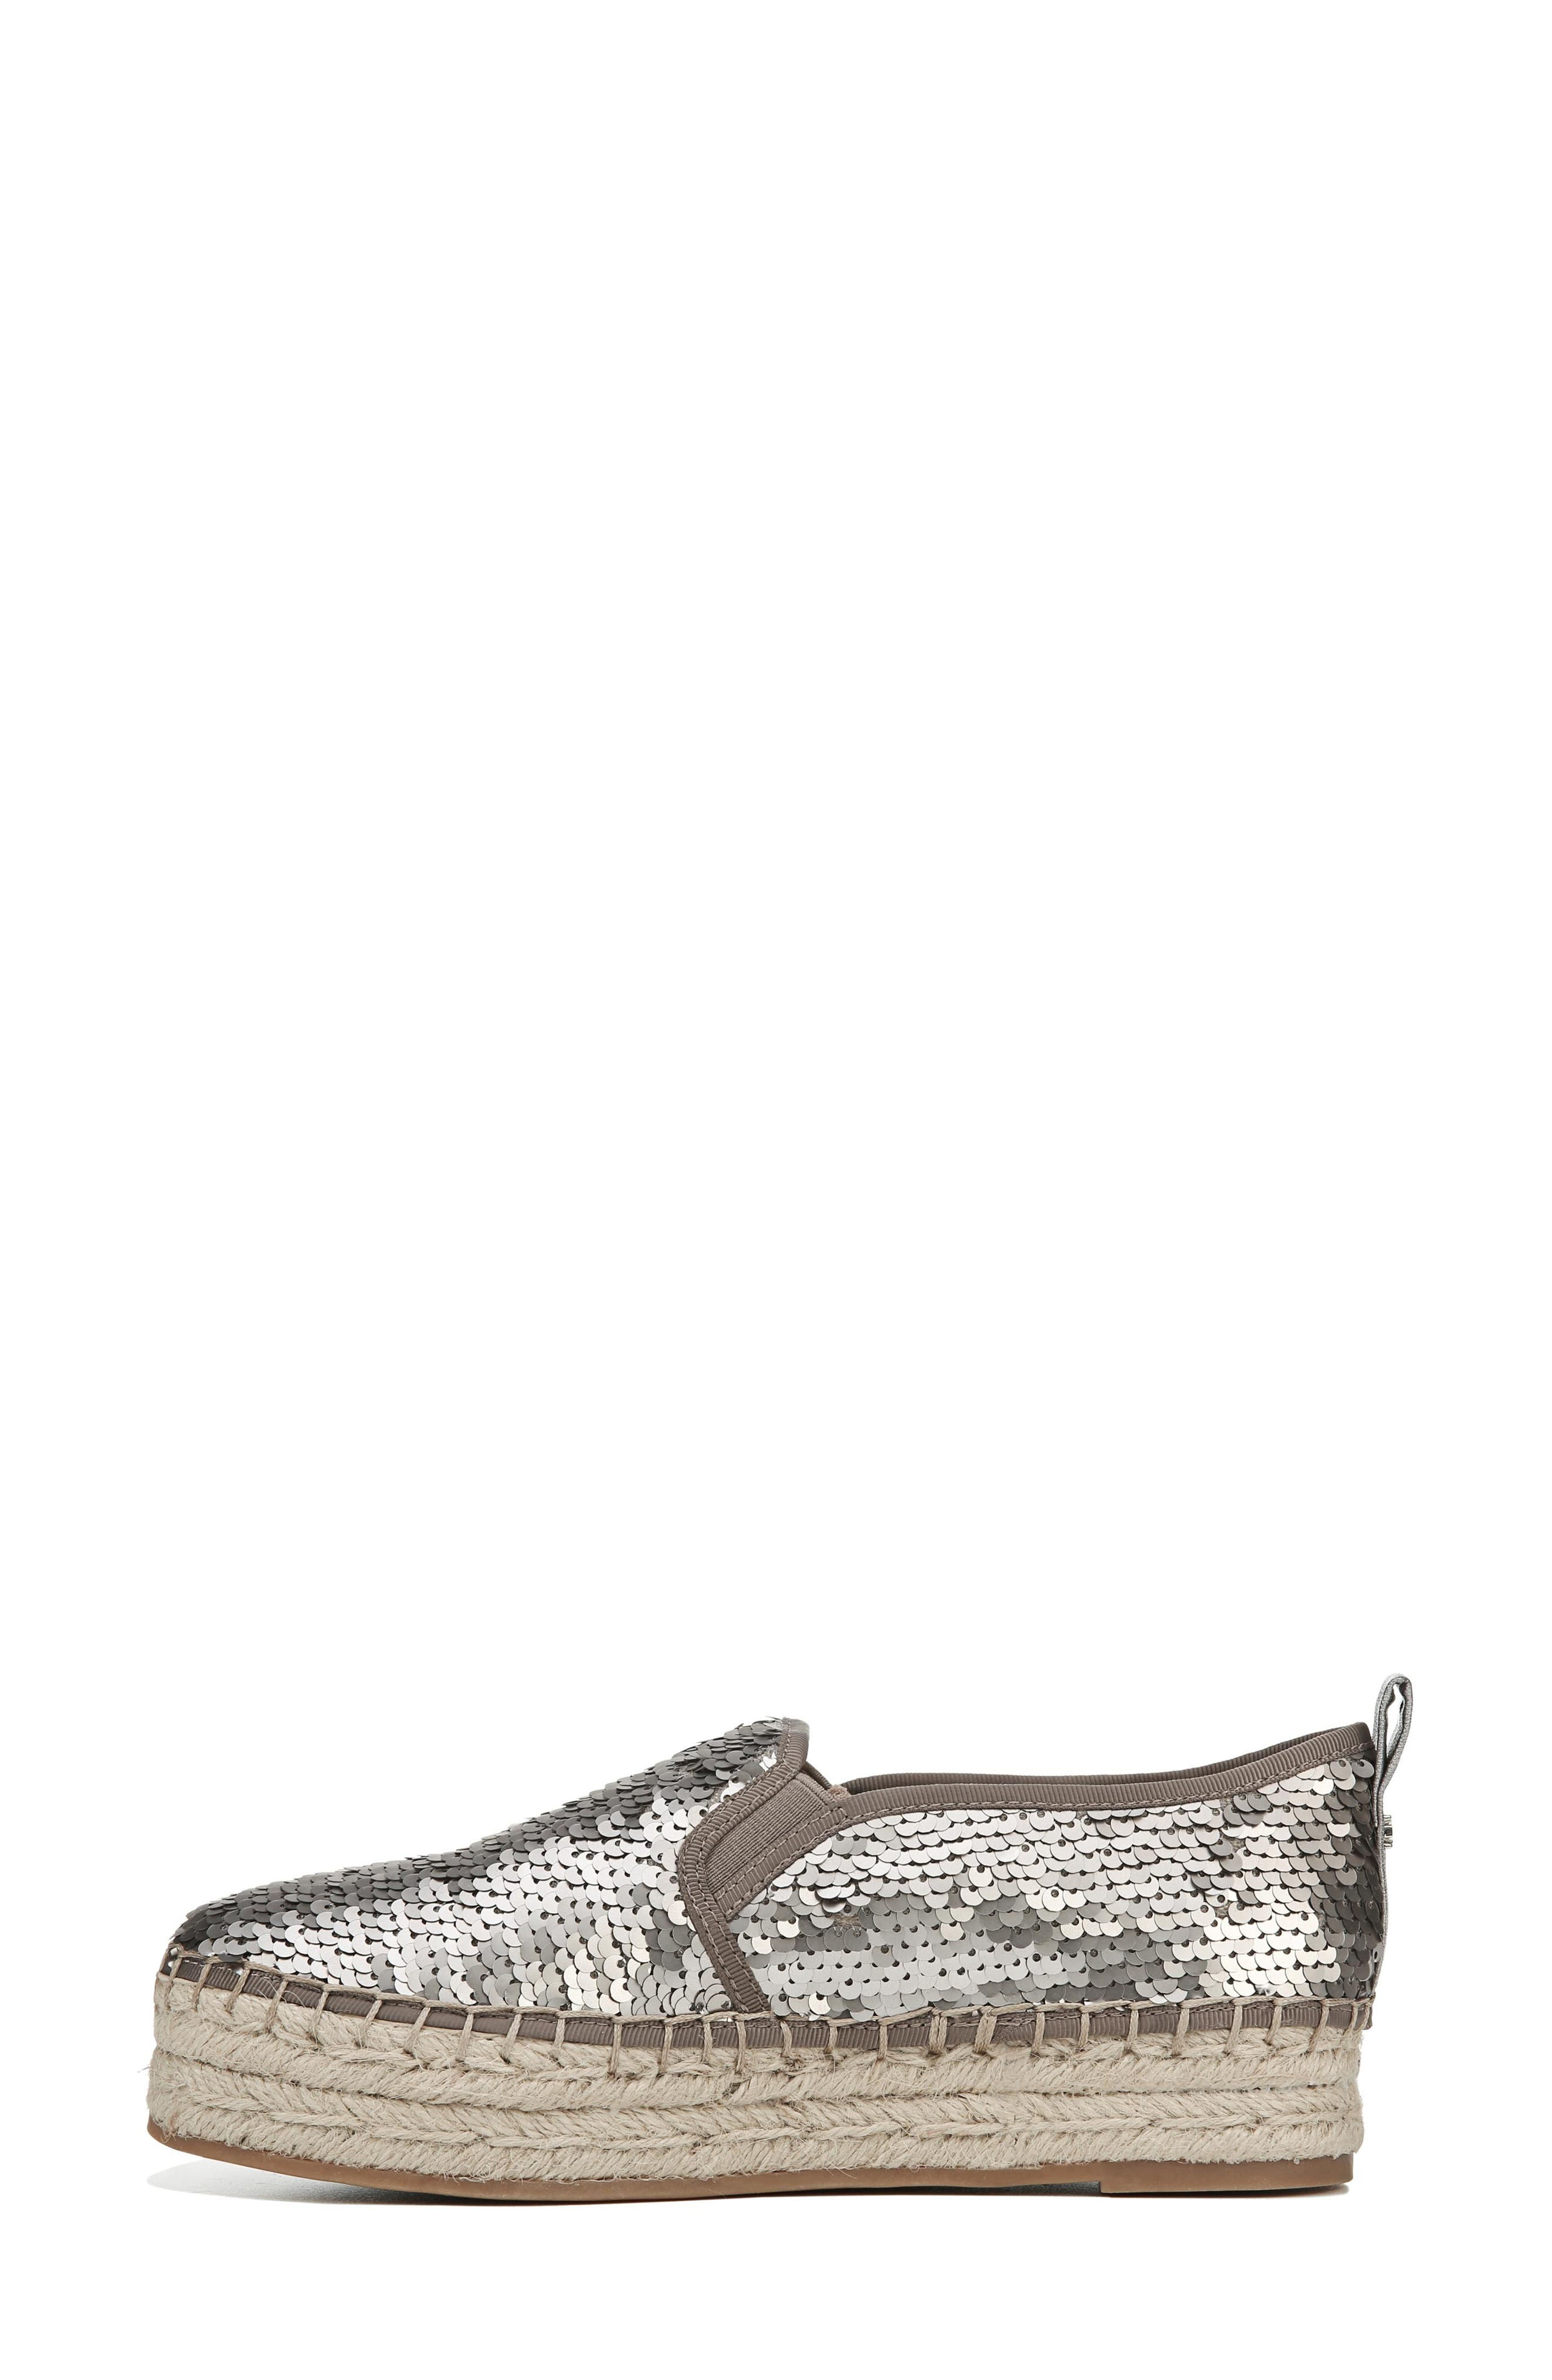 'Carrin' Espadrille Flat,                             Alternate thumbnail 3, color,                             PEWTER SEQUINS